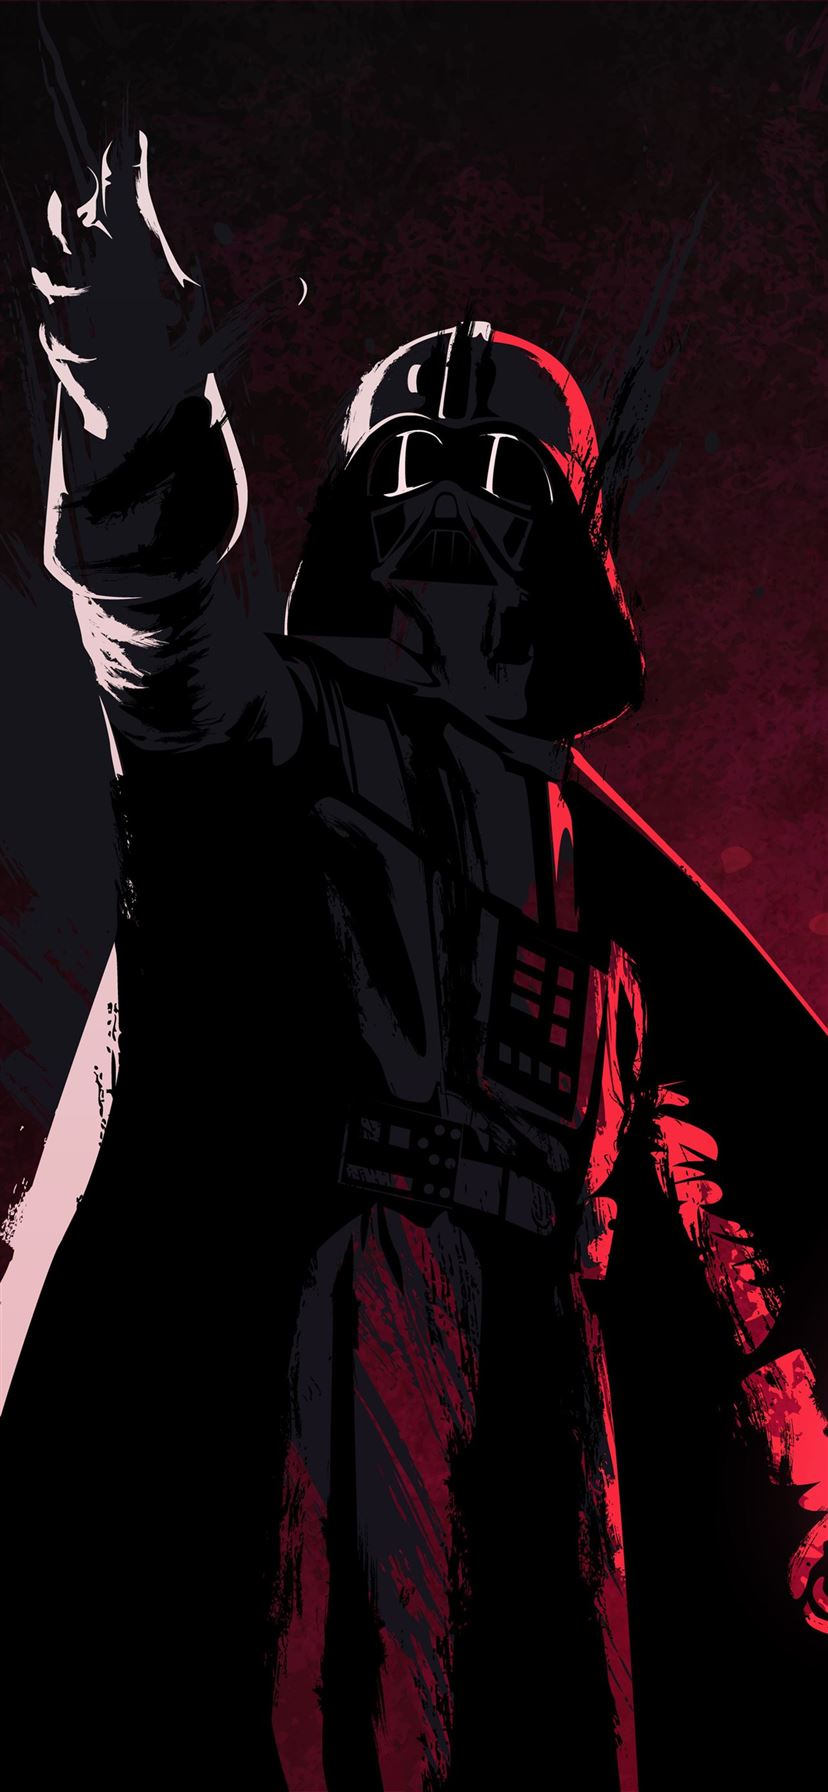 8k darth vader iphone 11 wallpaper ilikewallpaper com